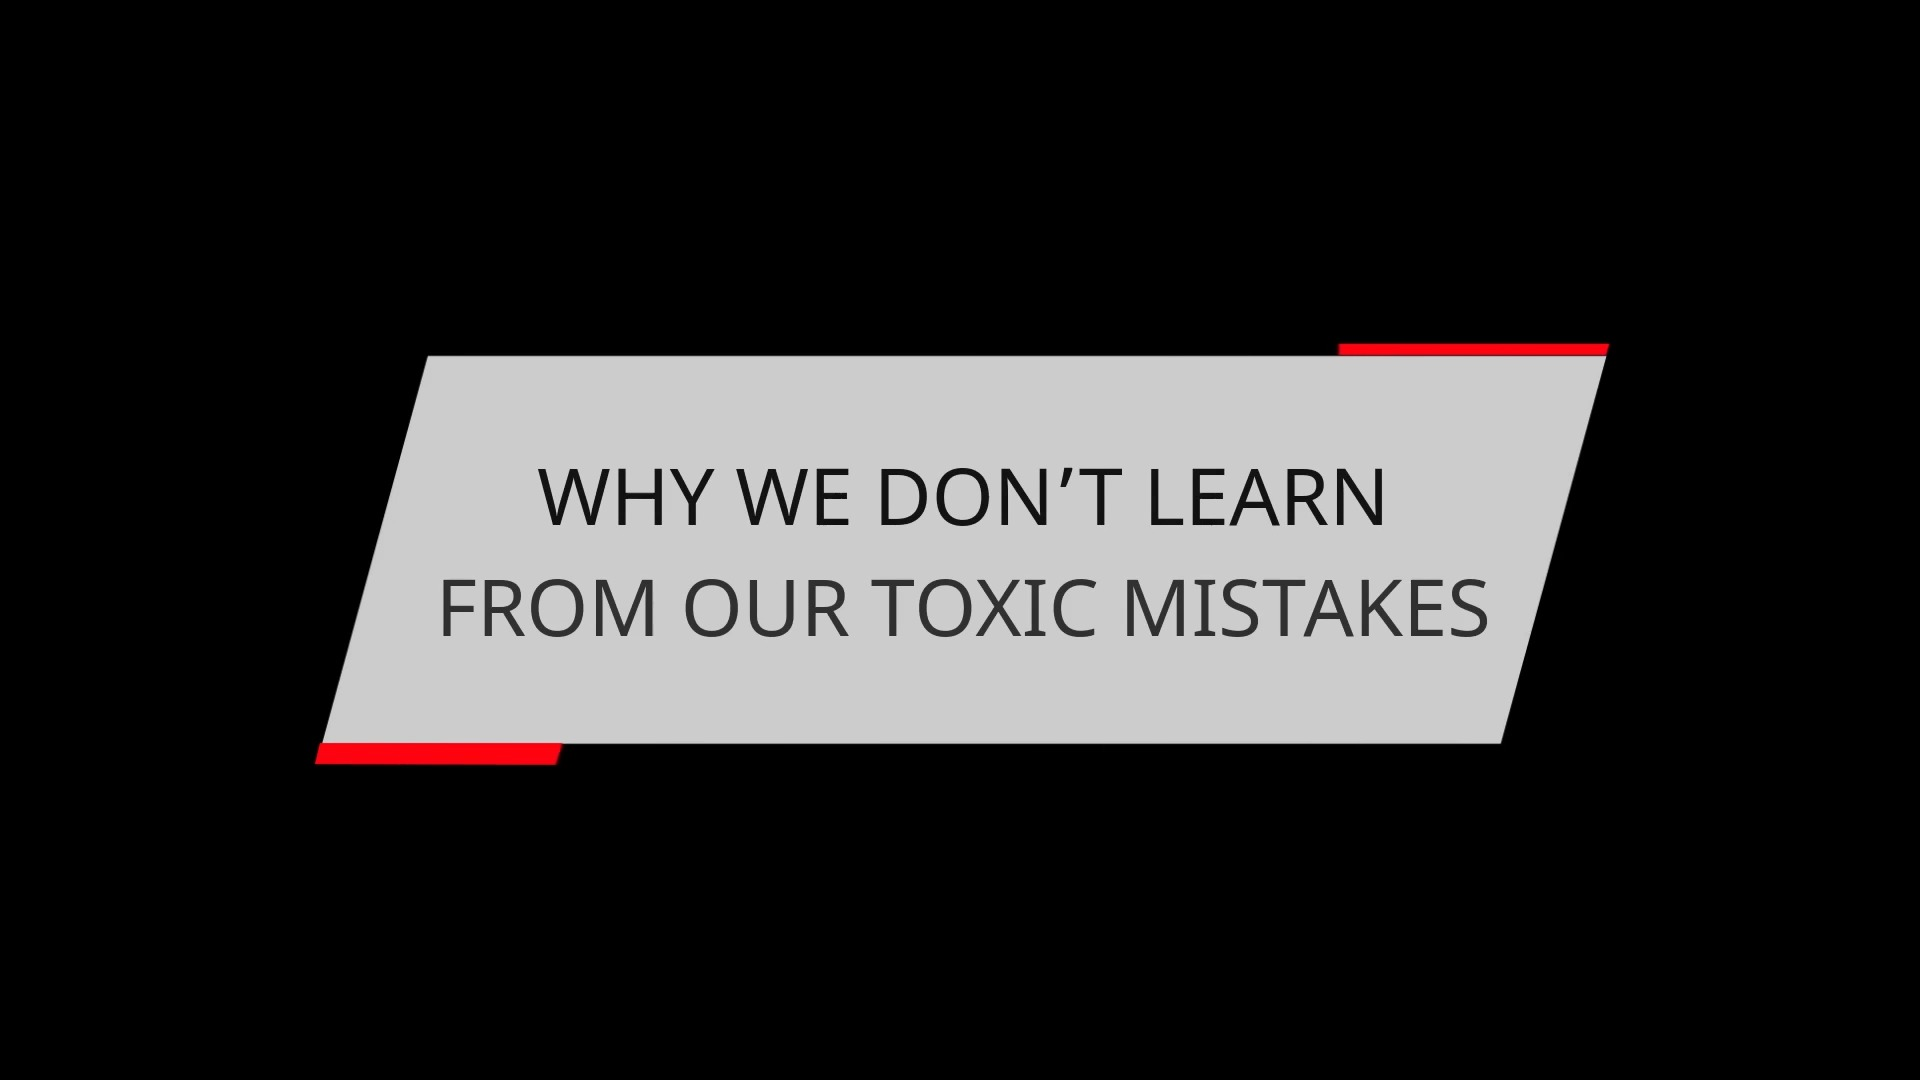 WHY WE DON'T LEARN FROM OUR TOXIC MISTAKES